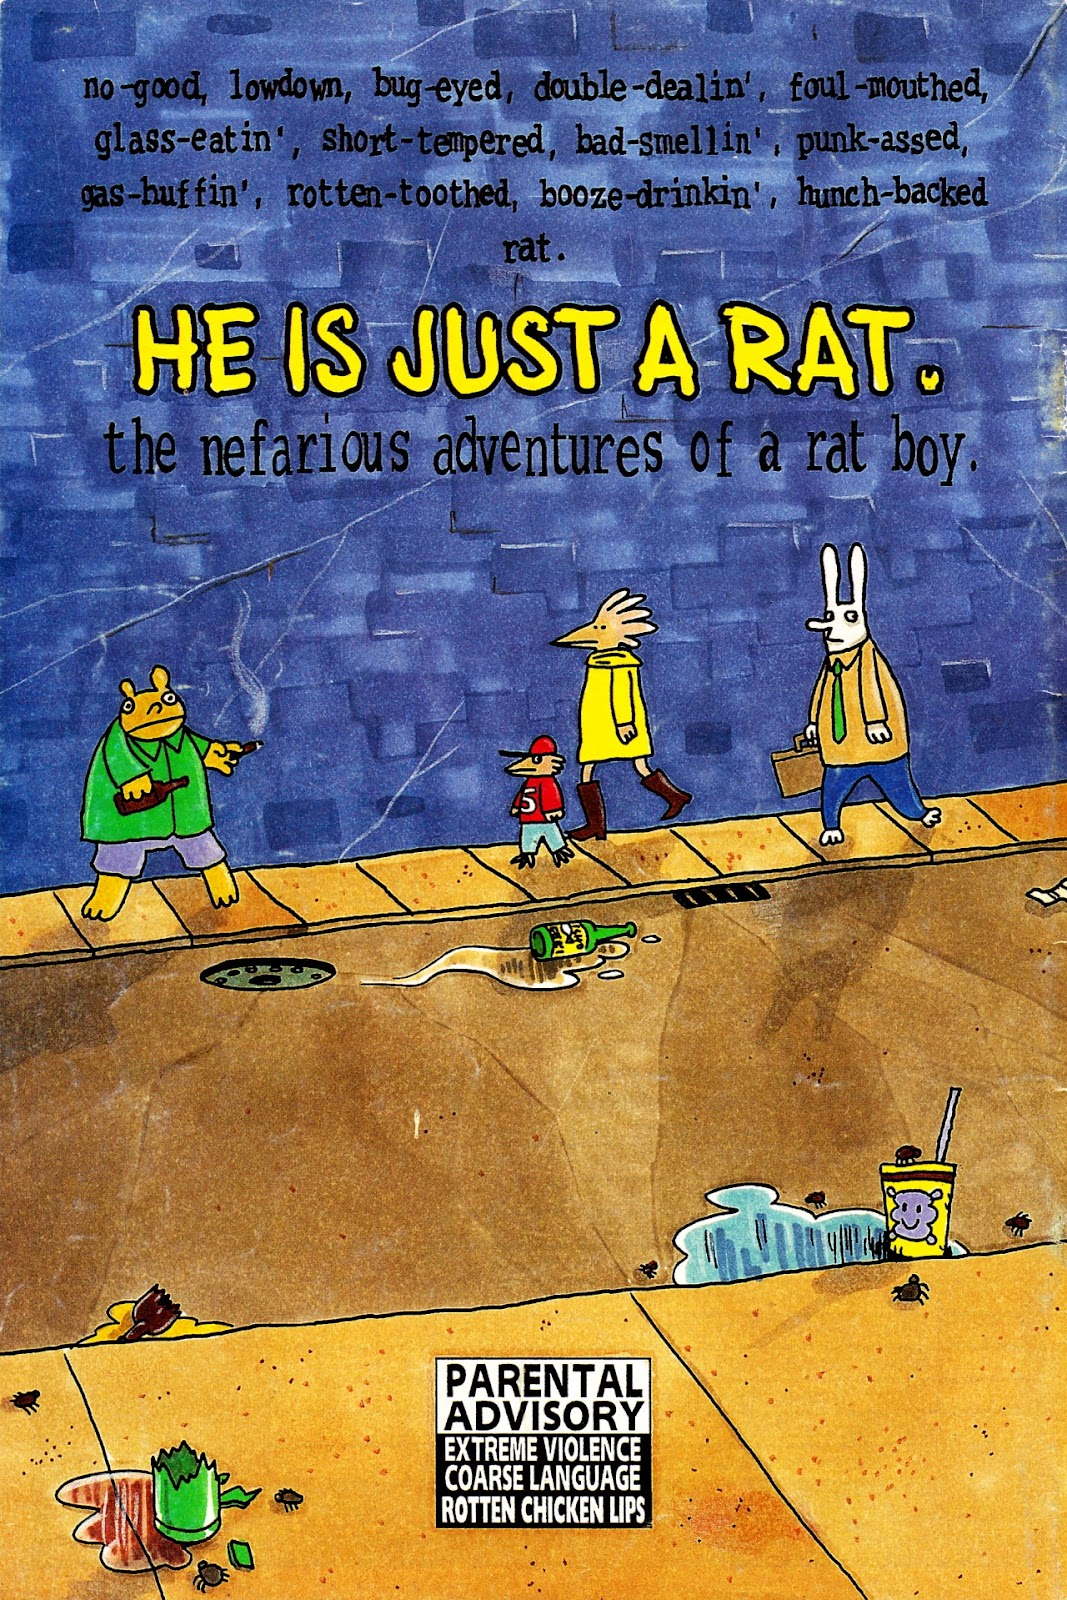 Read online He is Just a Rat comic -  Issue #1 - 52